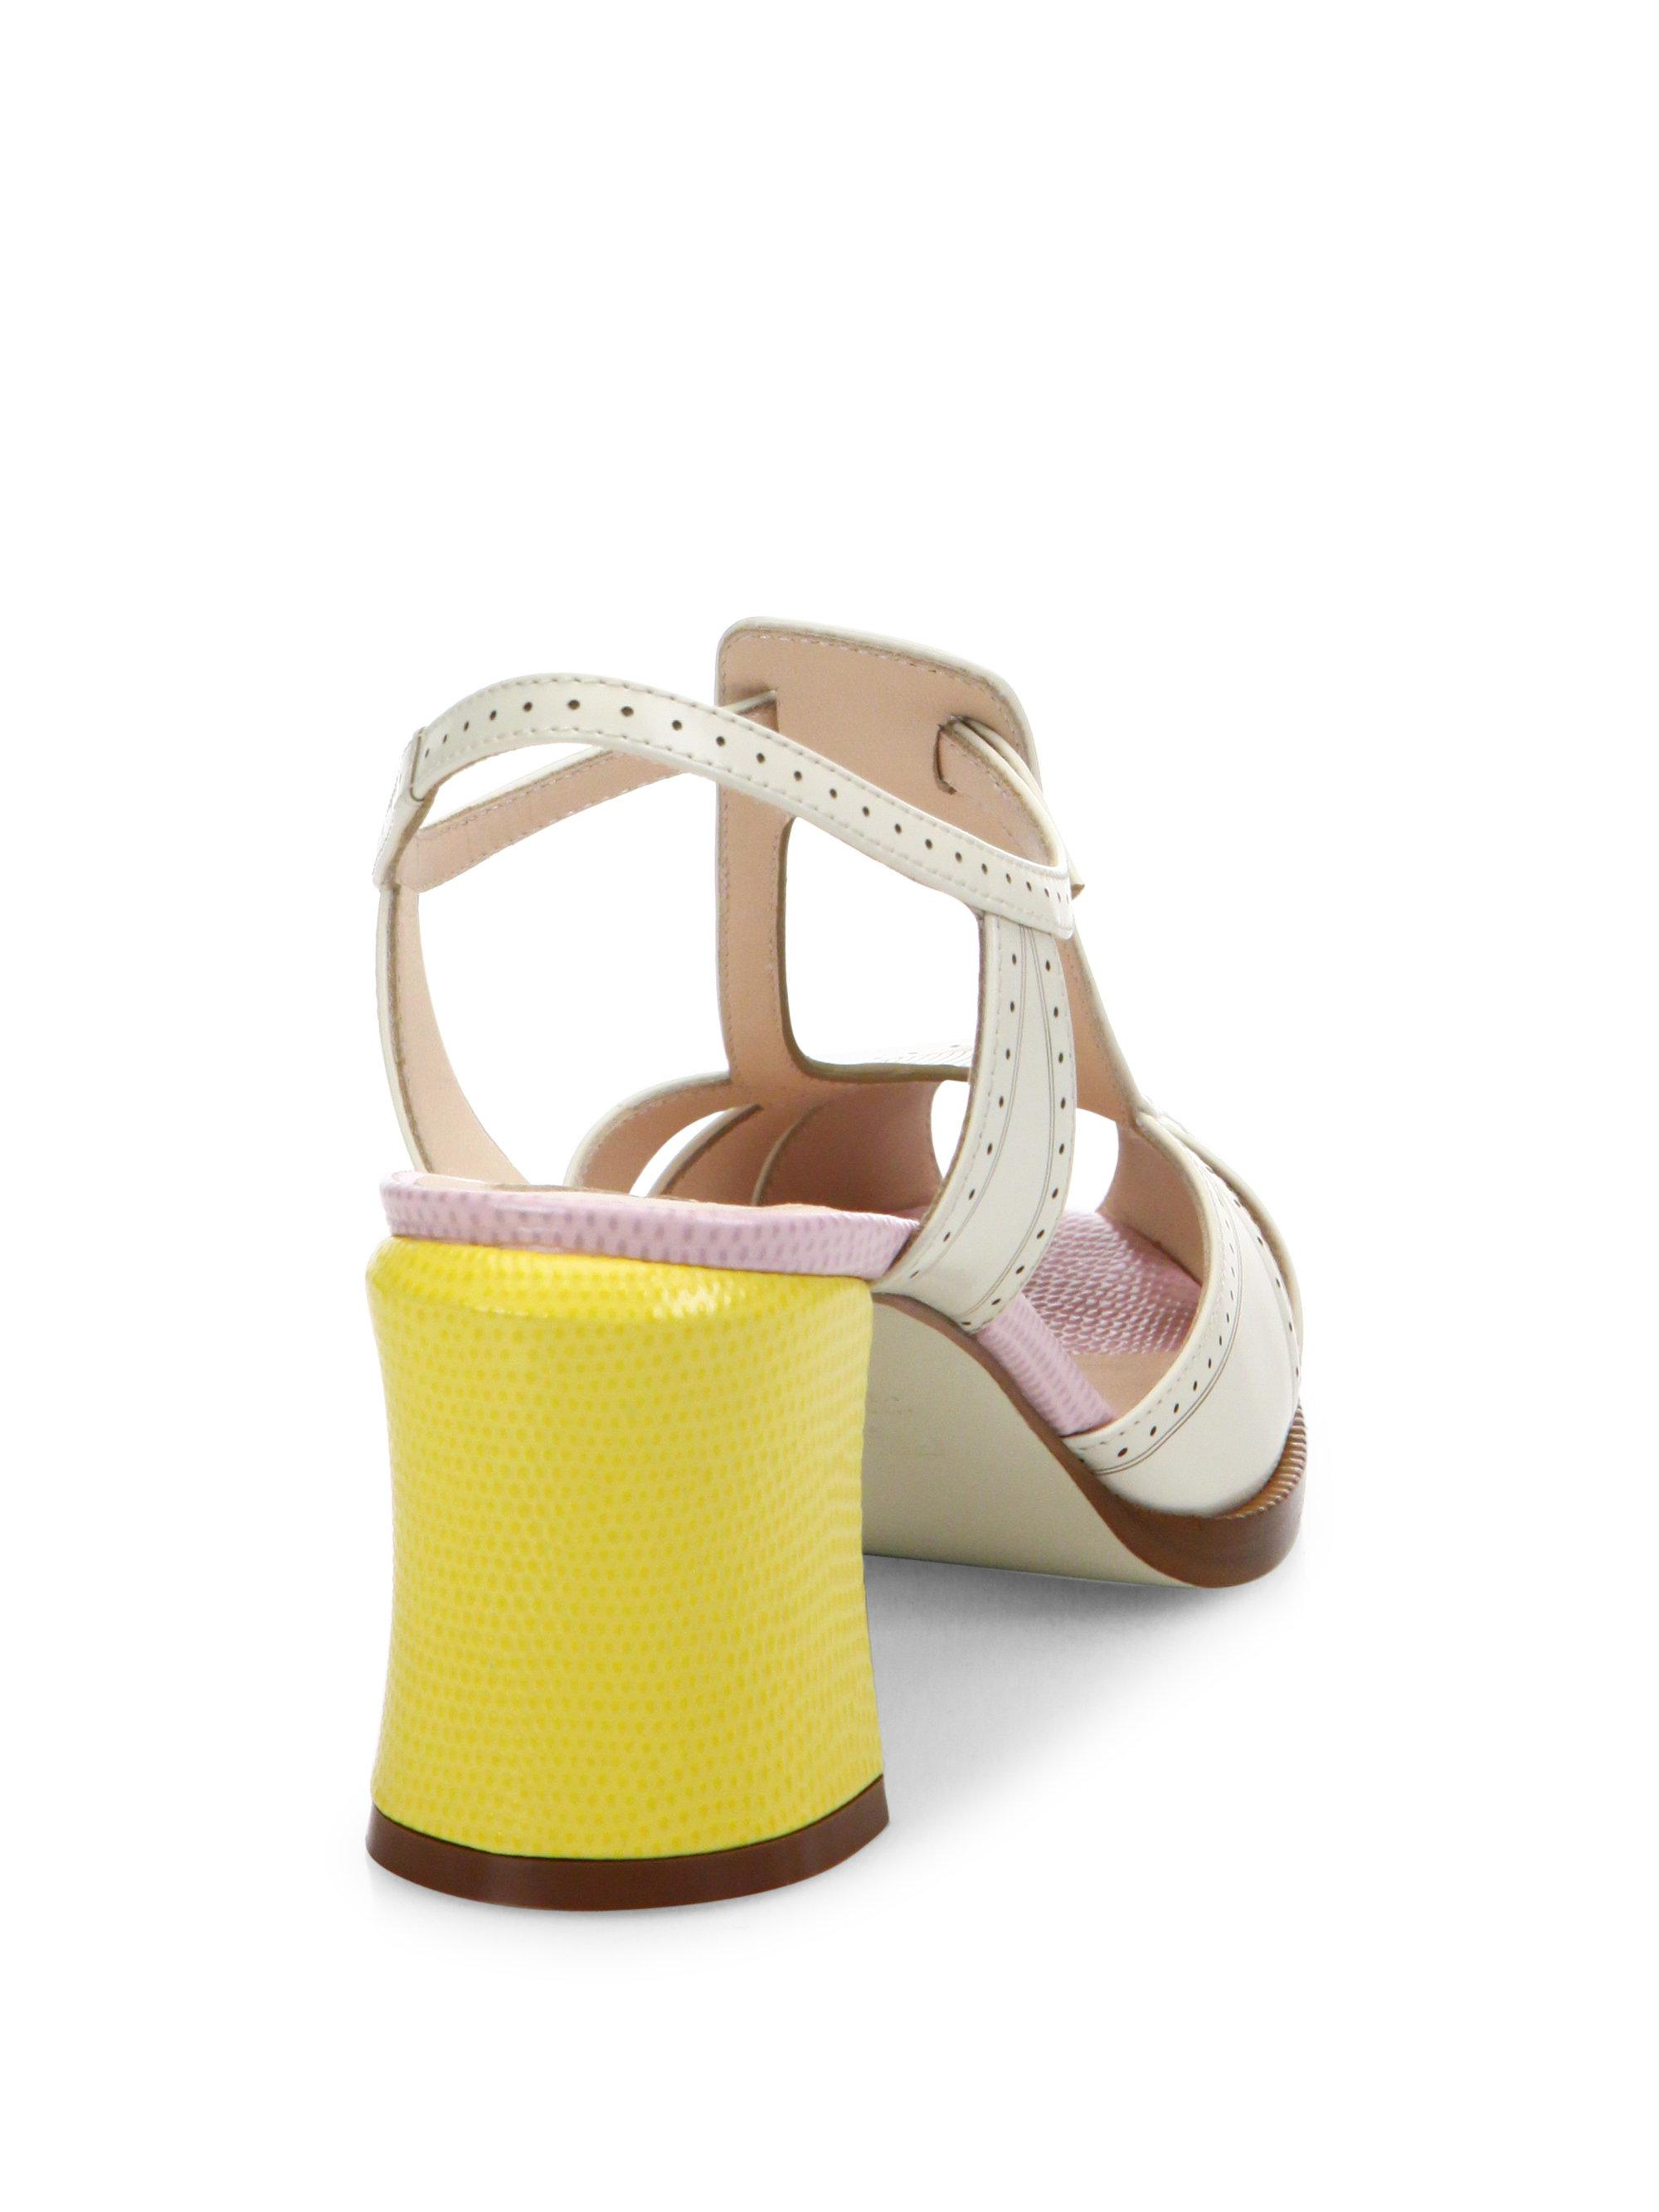 2123d375b963 Lyst - Fendi Chameleon Leather T-strap Sandals